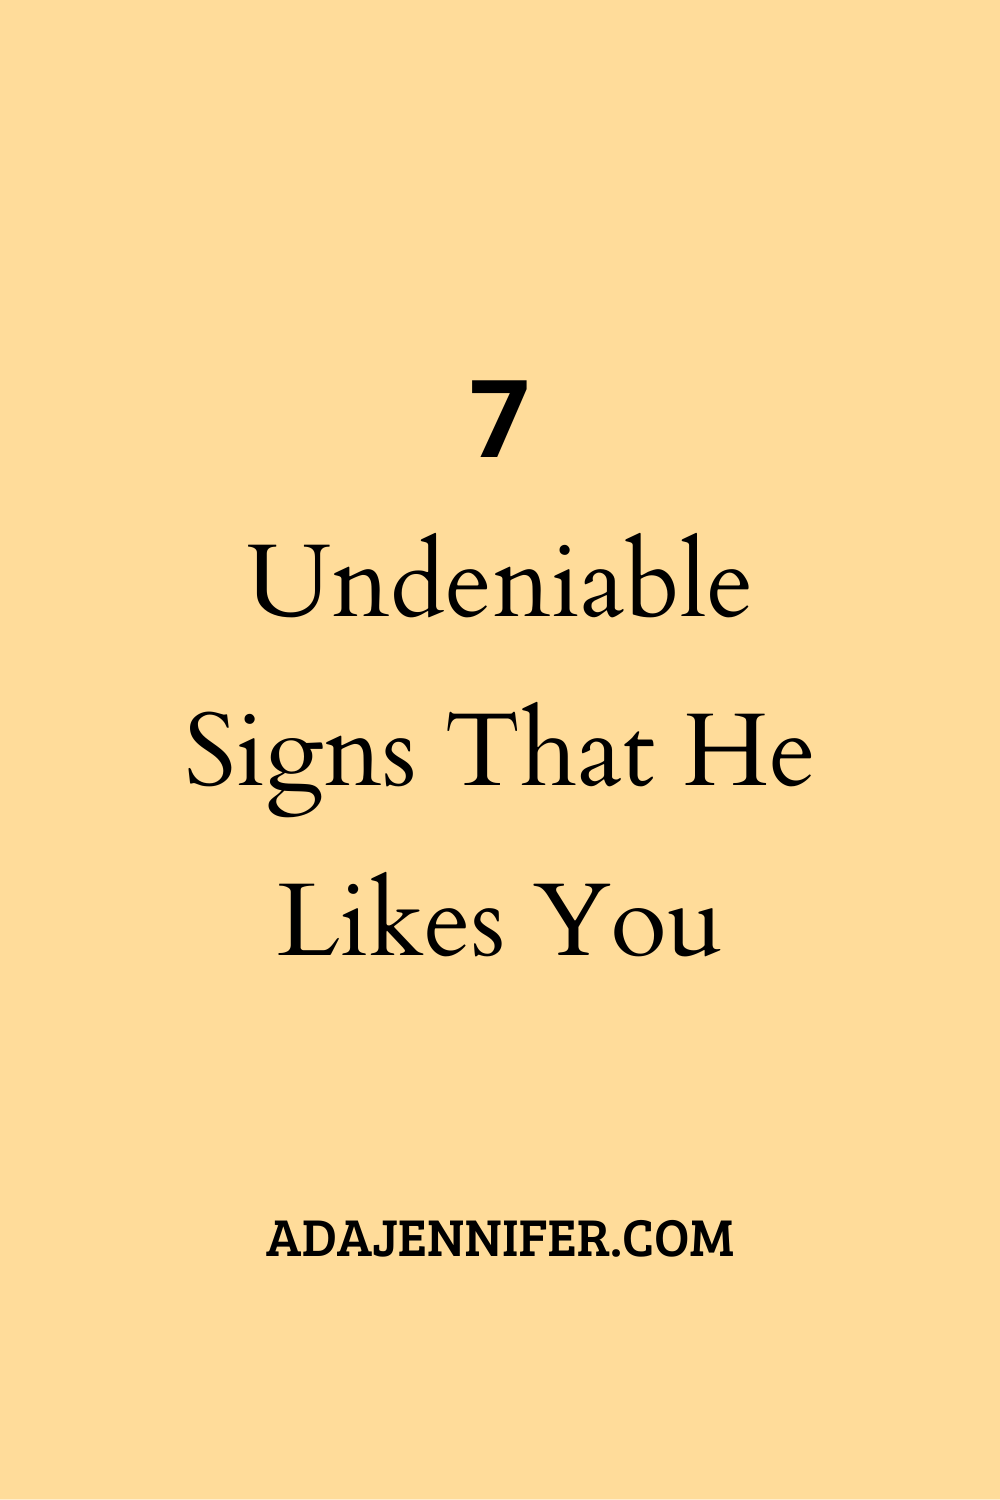 You undeniable likes signs he that 13 Undeniable